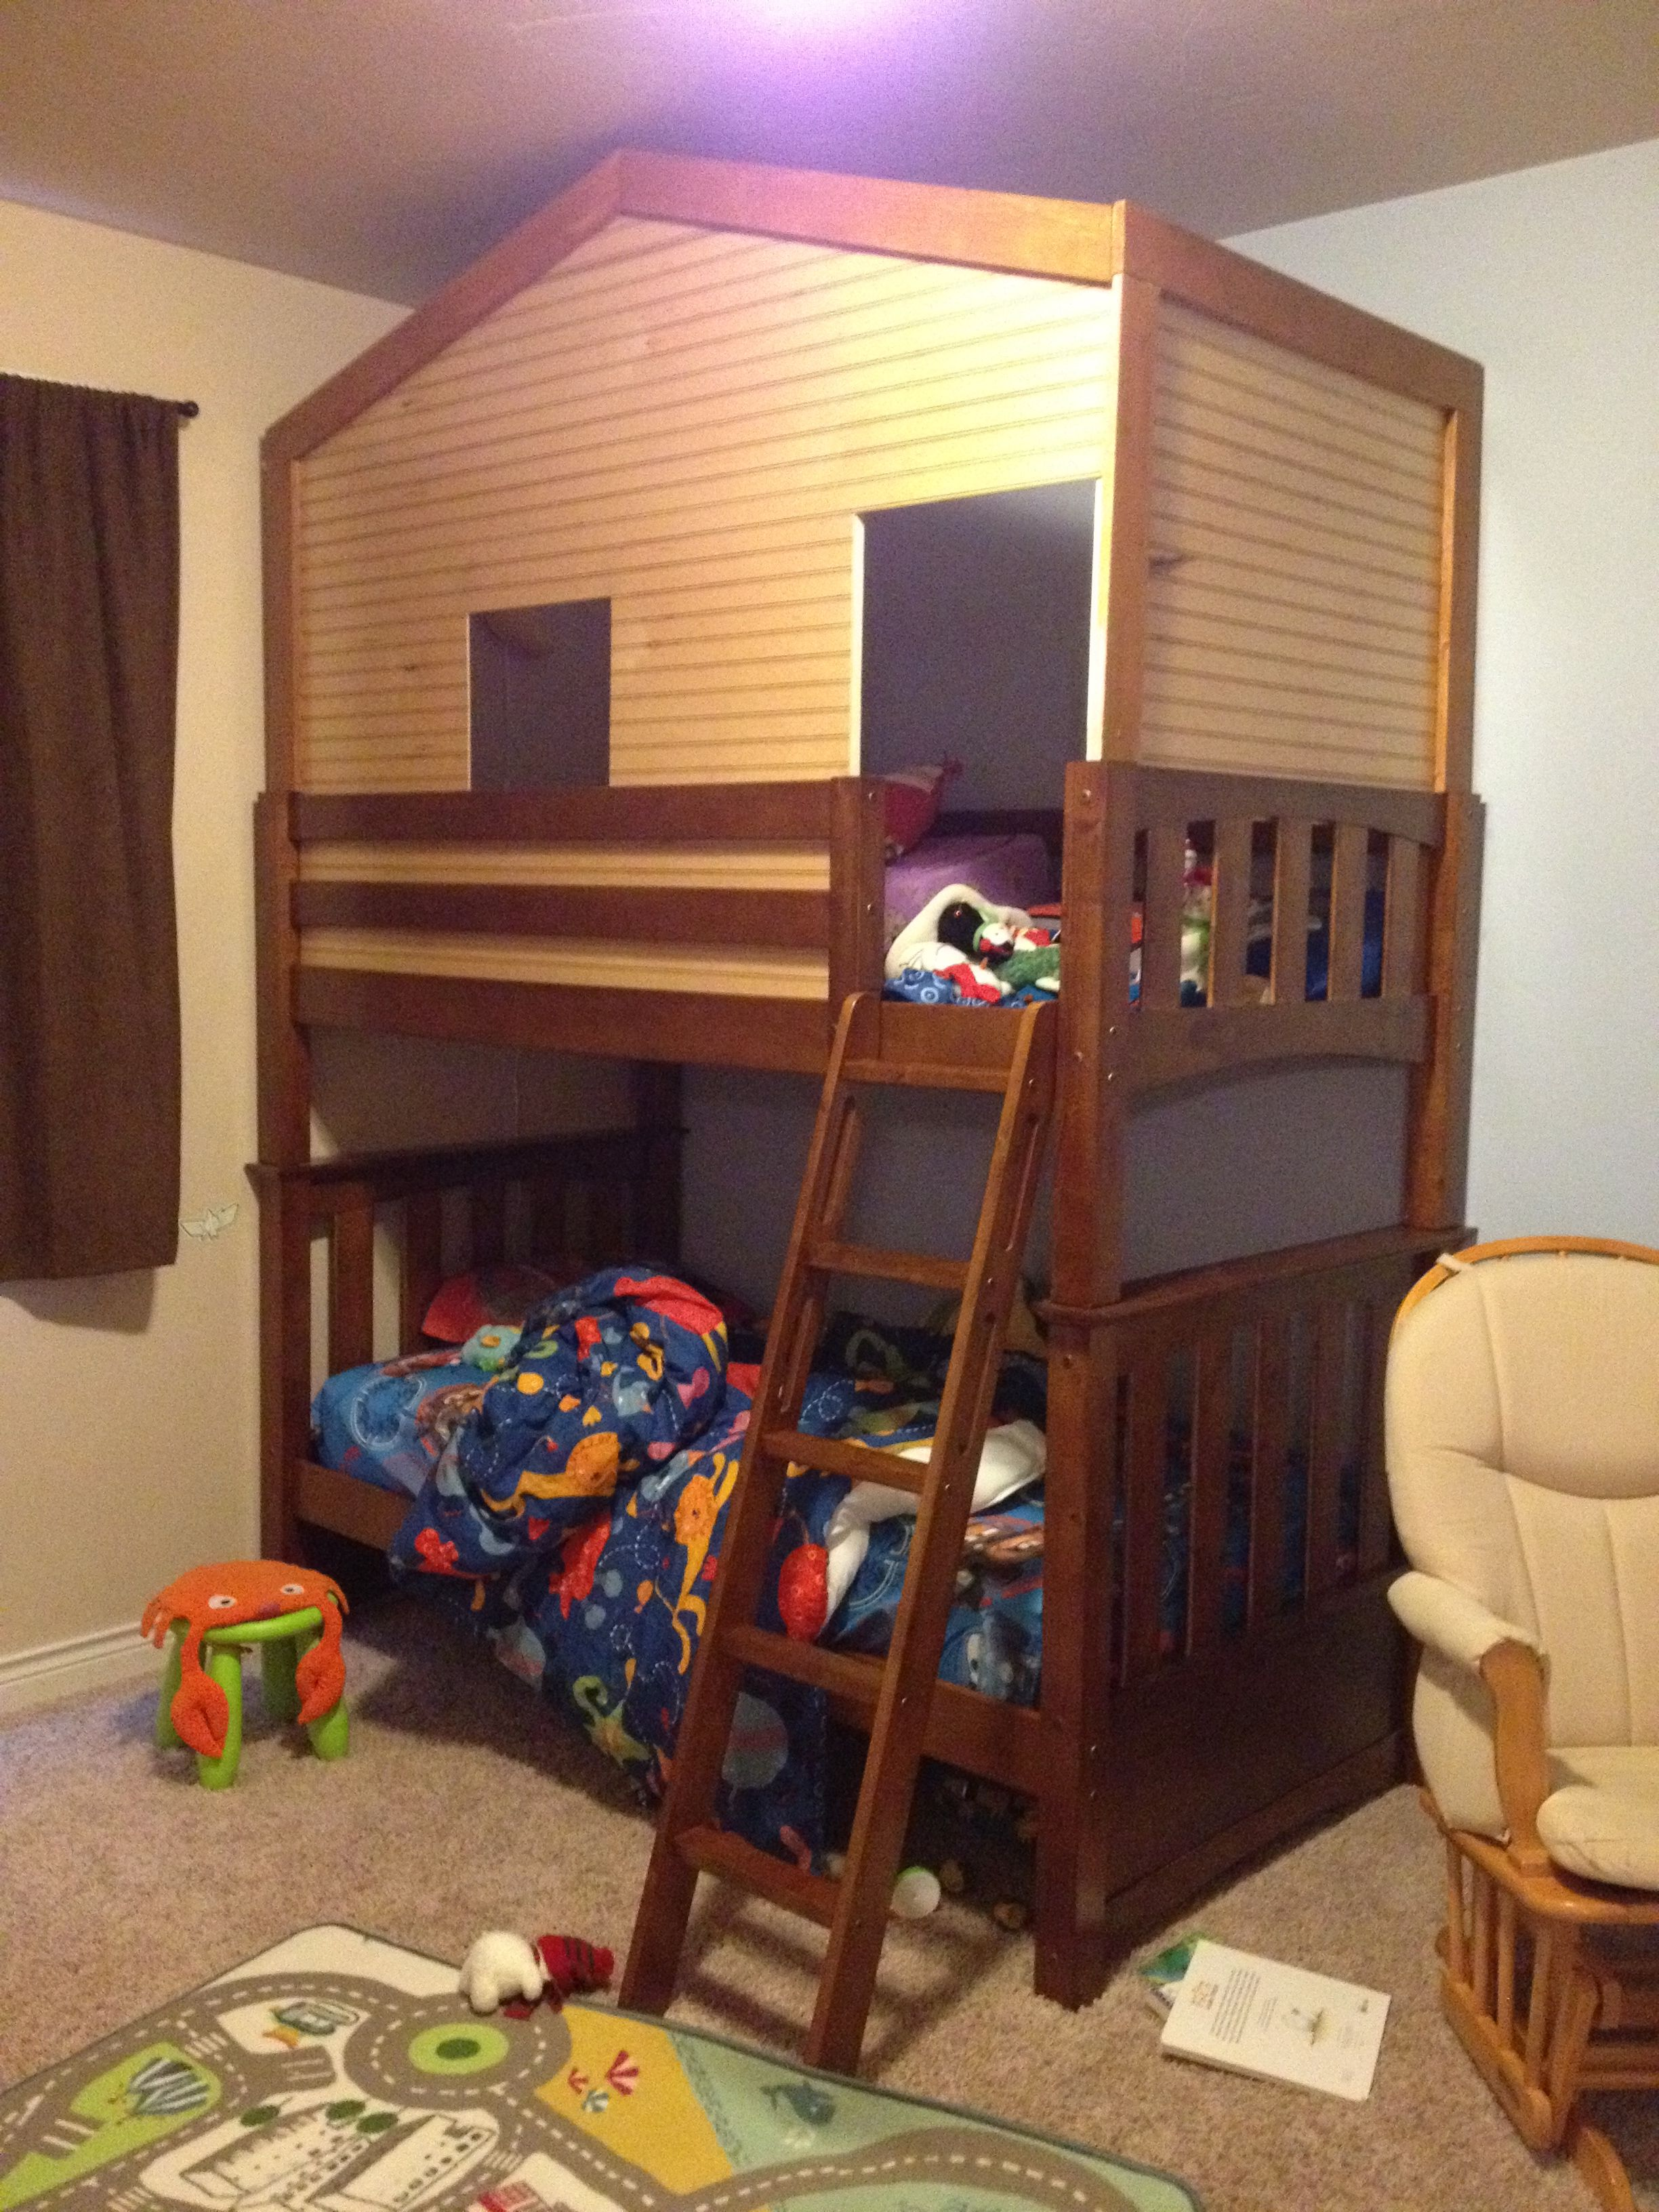 Our New Bunk Bed Fort Bunk Bed Wainscoting And A Little Lumber 9